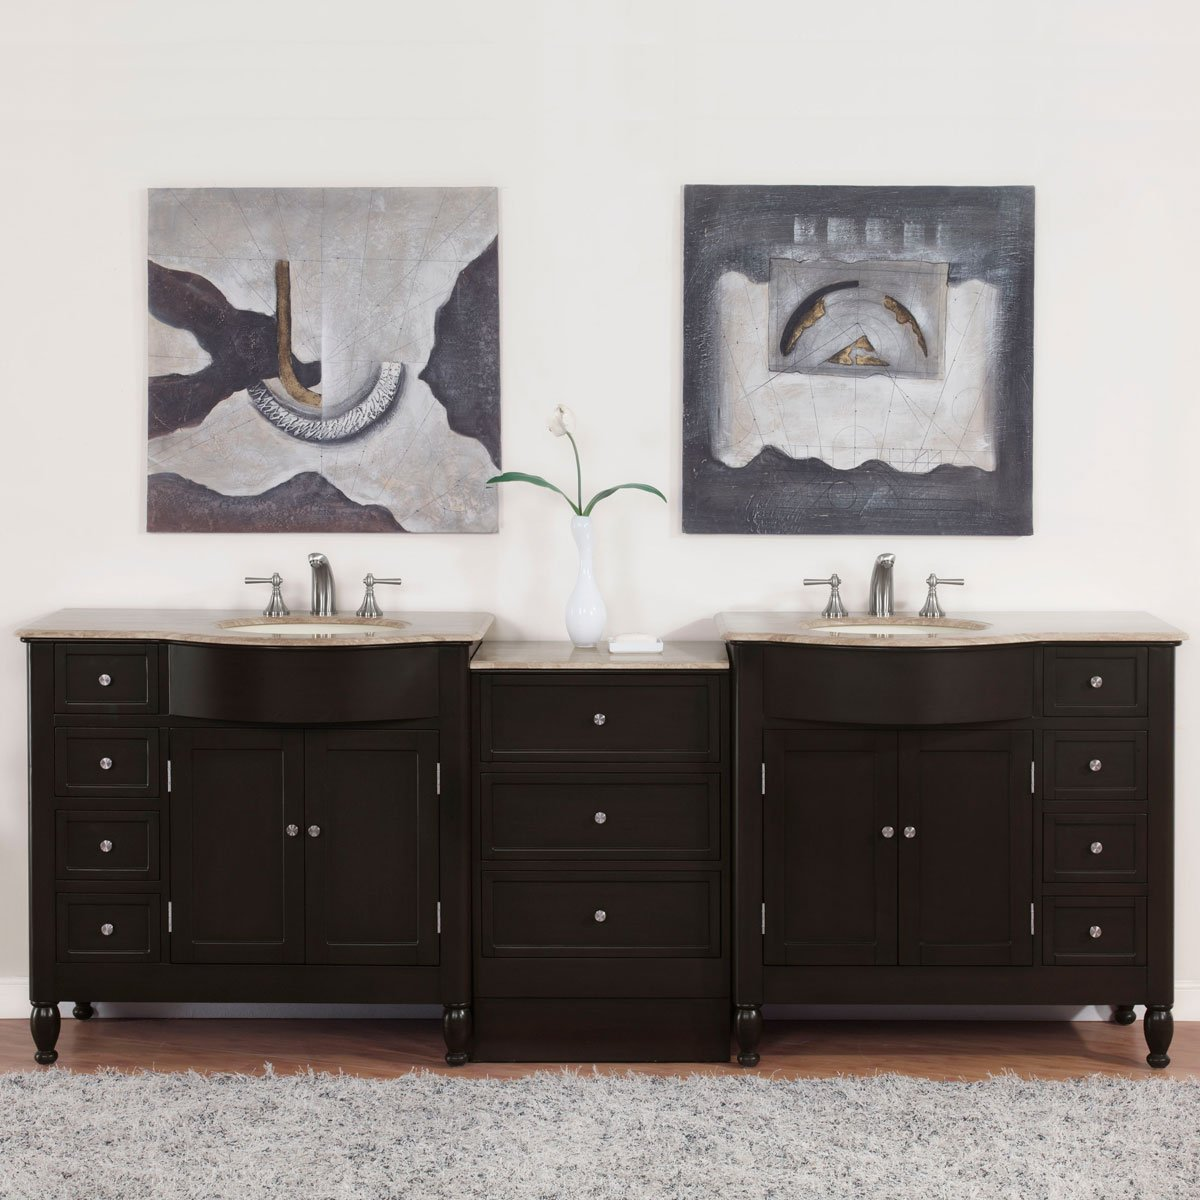 Silkroad Exclusive Countertop Travertine Double Sink Bathroom Vanity with Cabinet, 95-Inch by Silkroad Exclusive